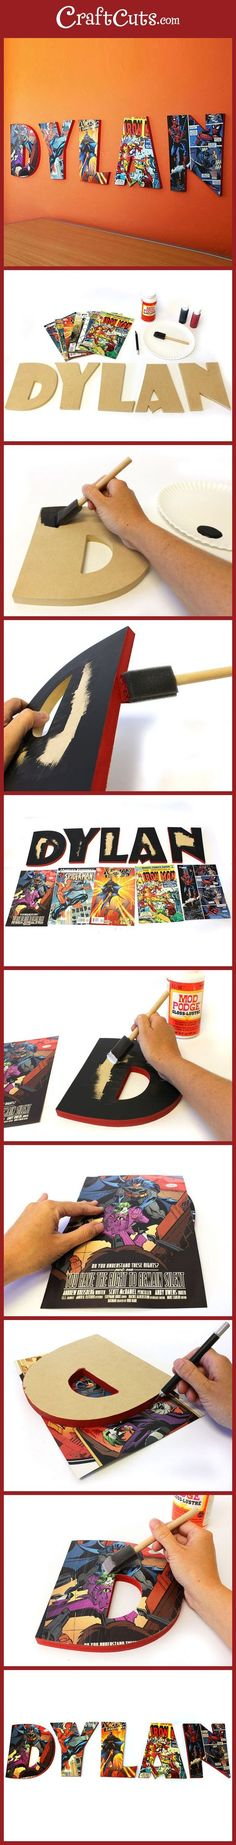 How to Make Comic Book Letters   Wood Comic Book Letters   http://CraftCuts.com